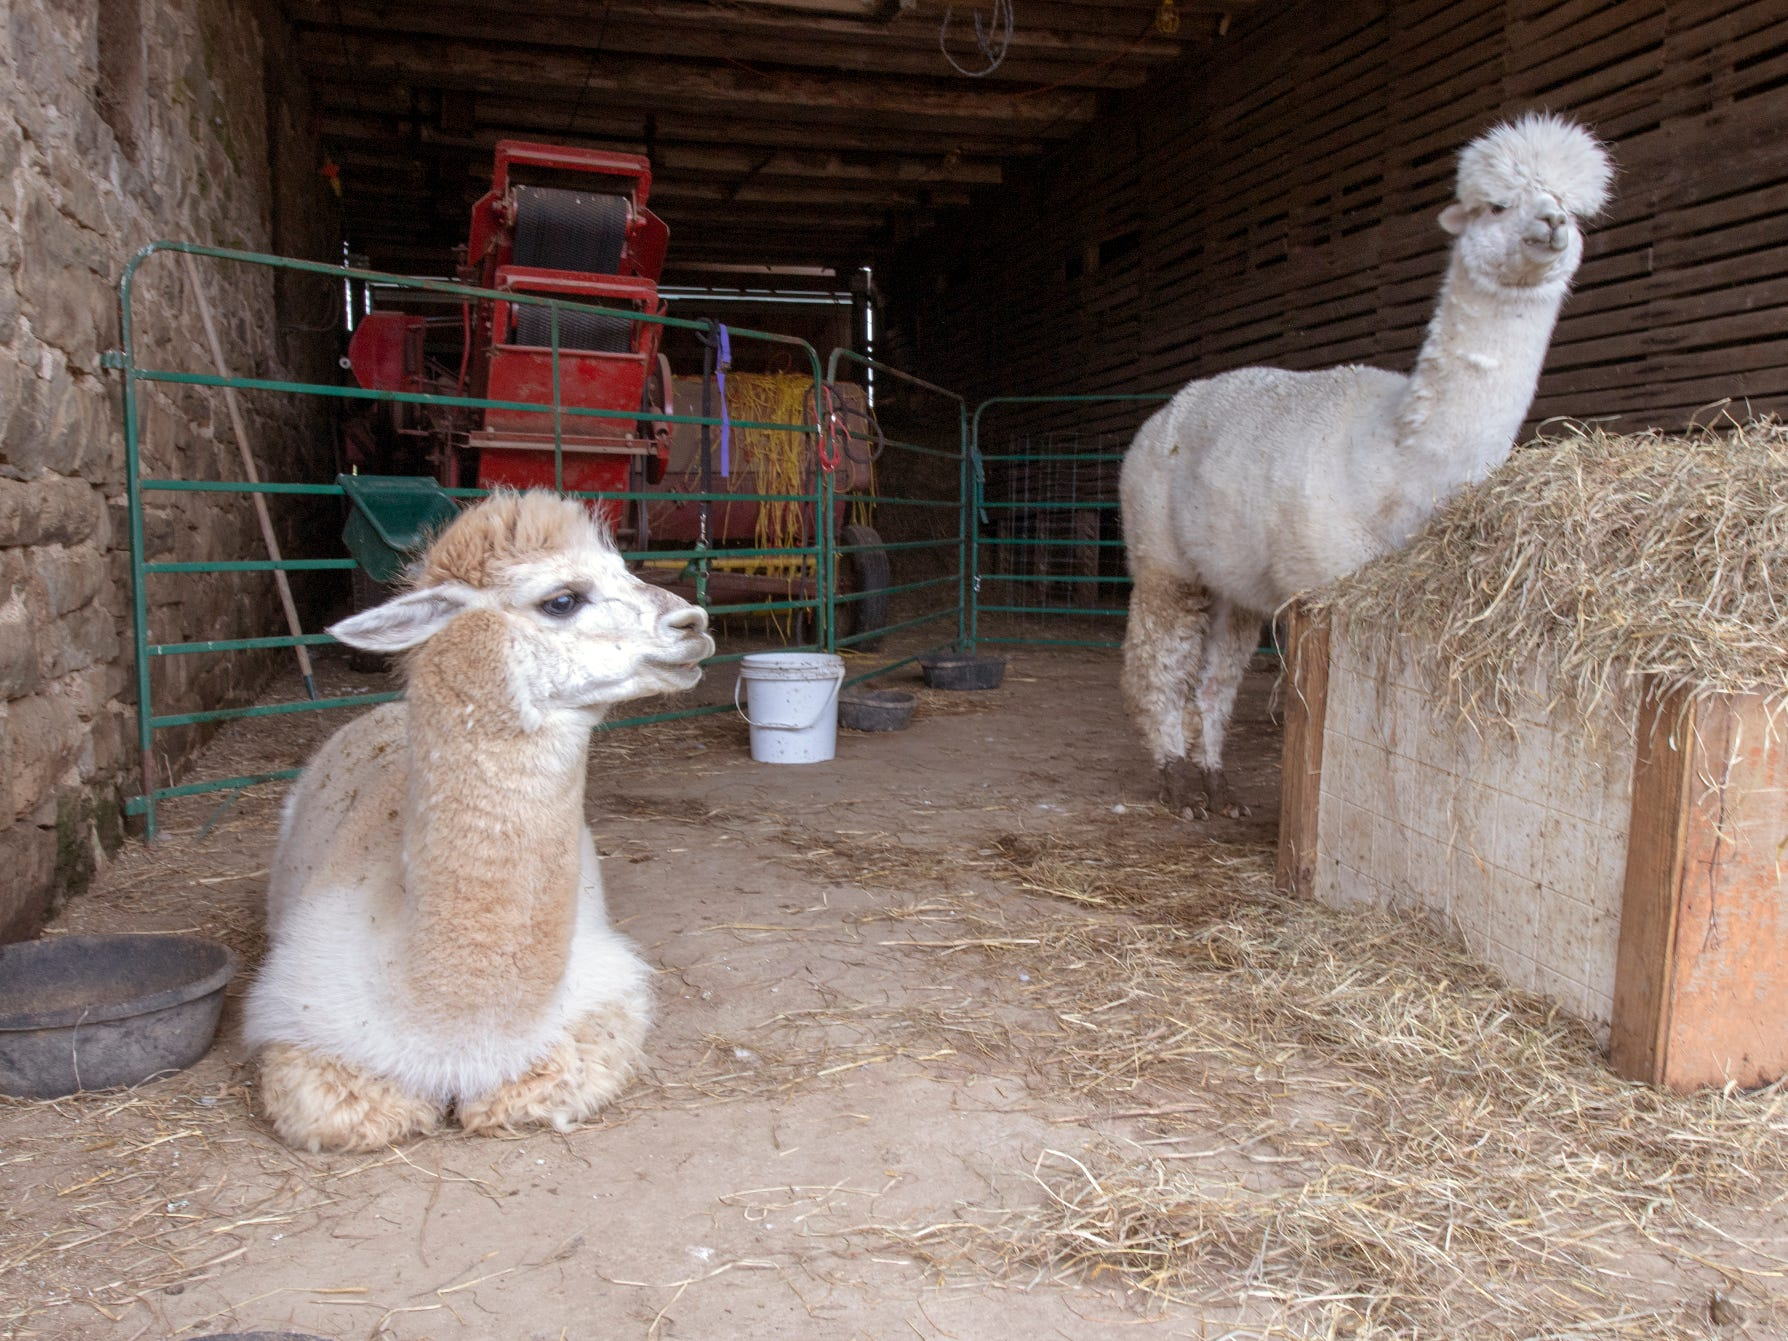 An alpaca at left is 'cushing,' a way to describe the way the animal rests and sleeps. Four alpacas at Painted Spring farm in Jackson Township were killed in a dog attack recently, one was in the cushing position when it was found injured after being mauled, according to Beth Lutz, who owns the farm with her husband.